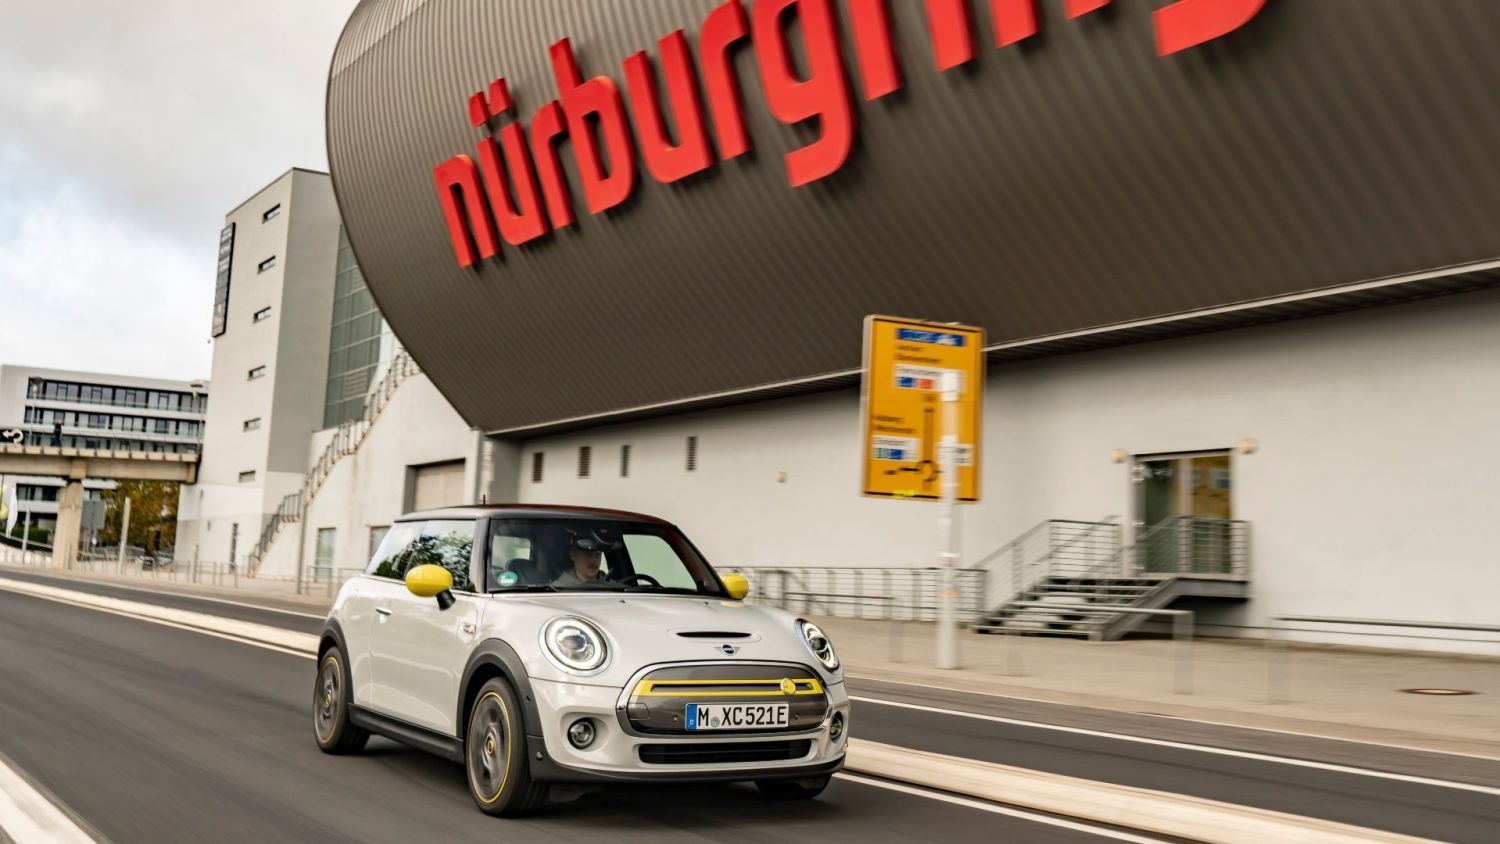 Mini Nurburgring no brakes